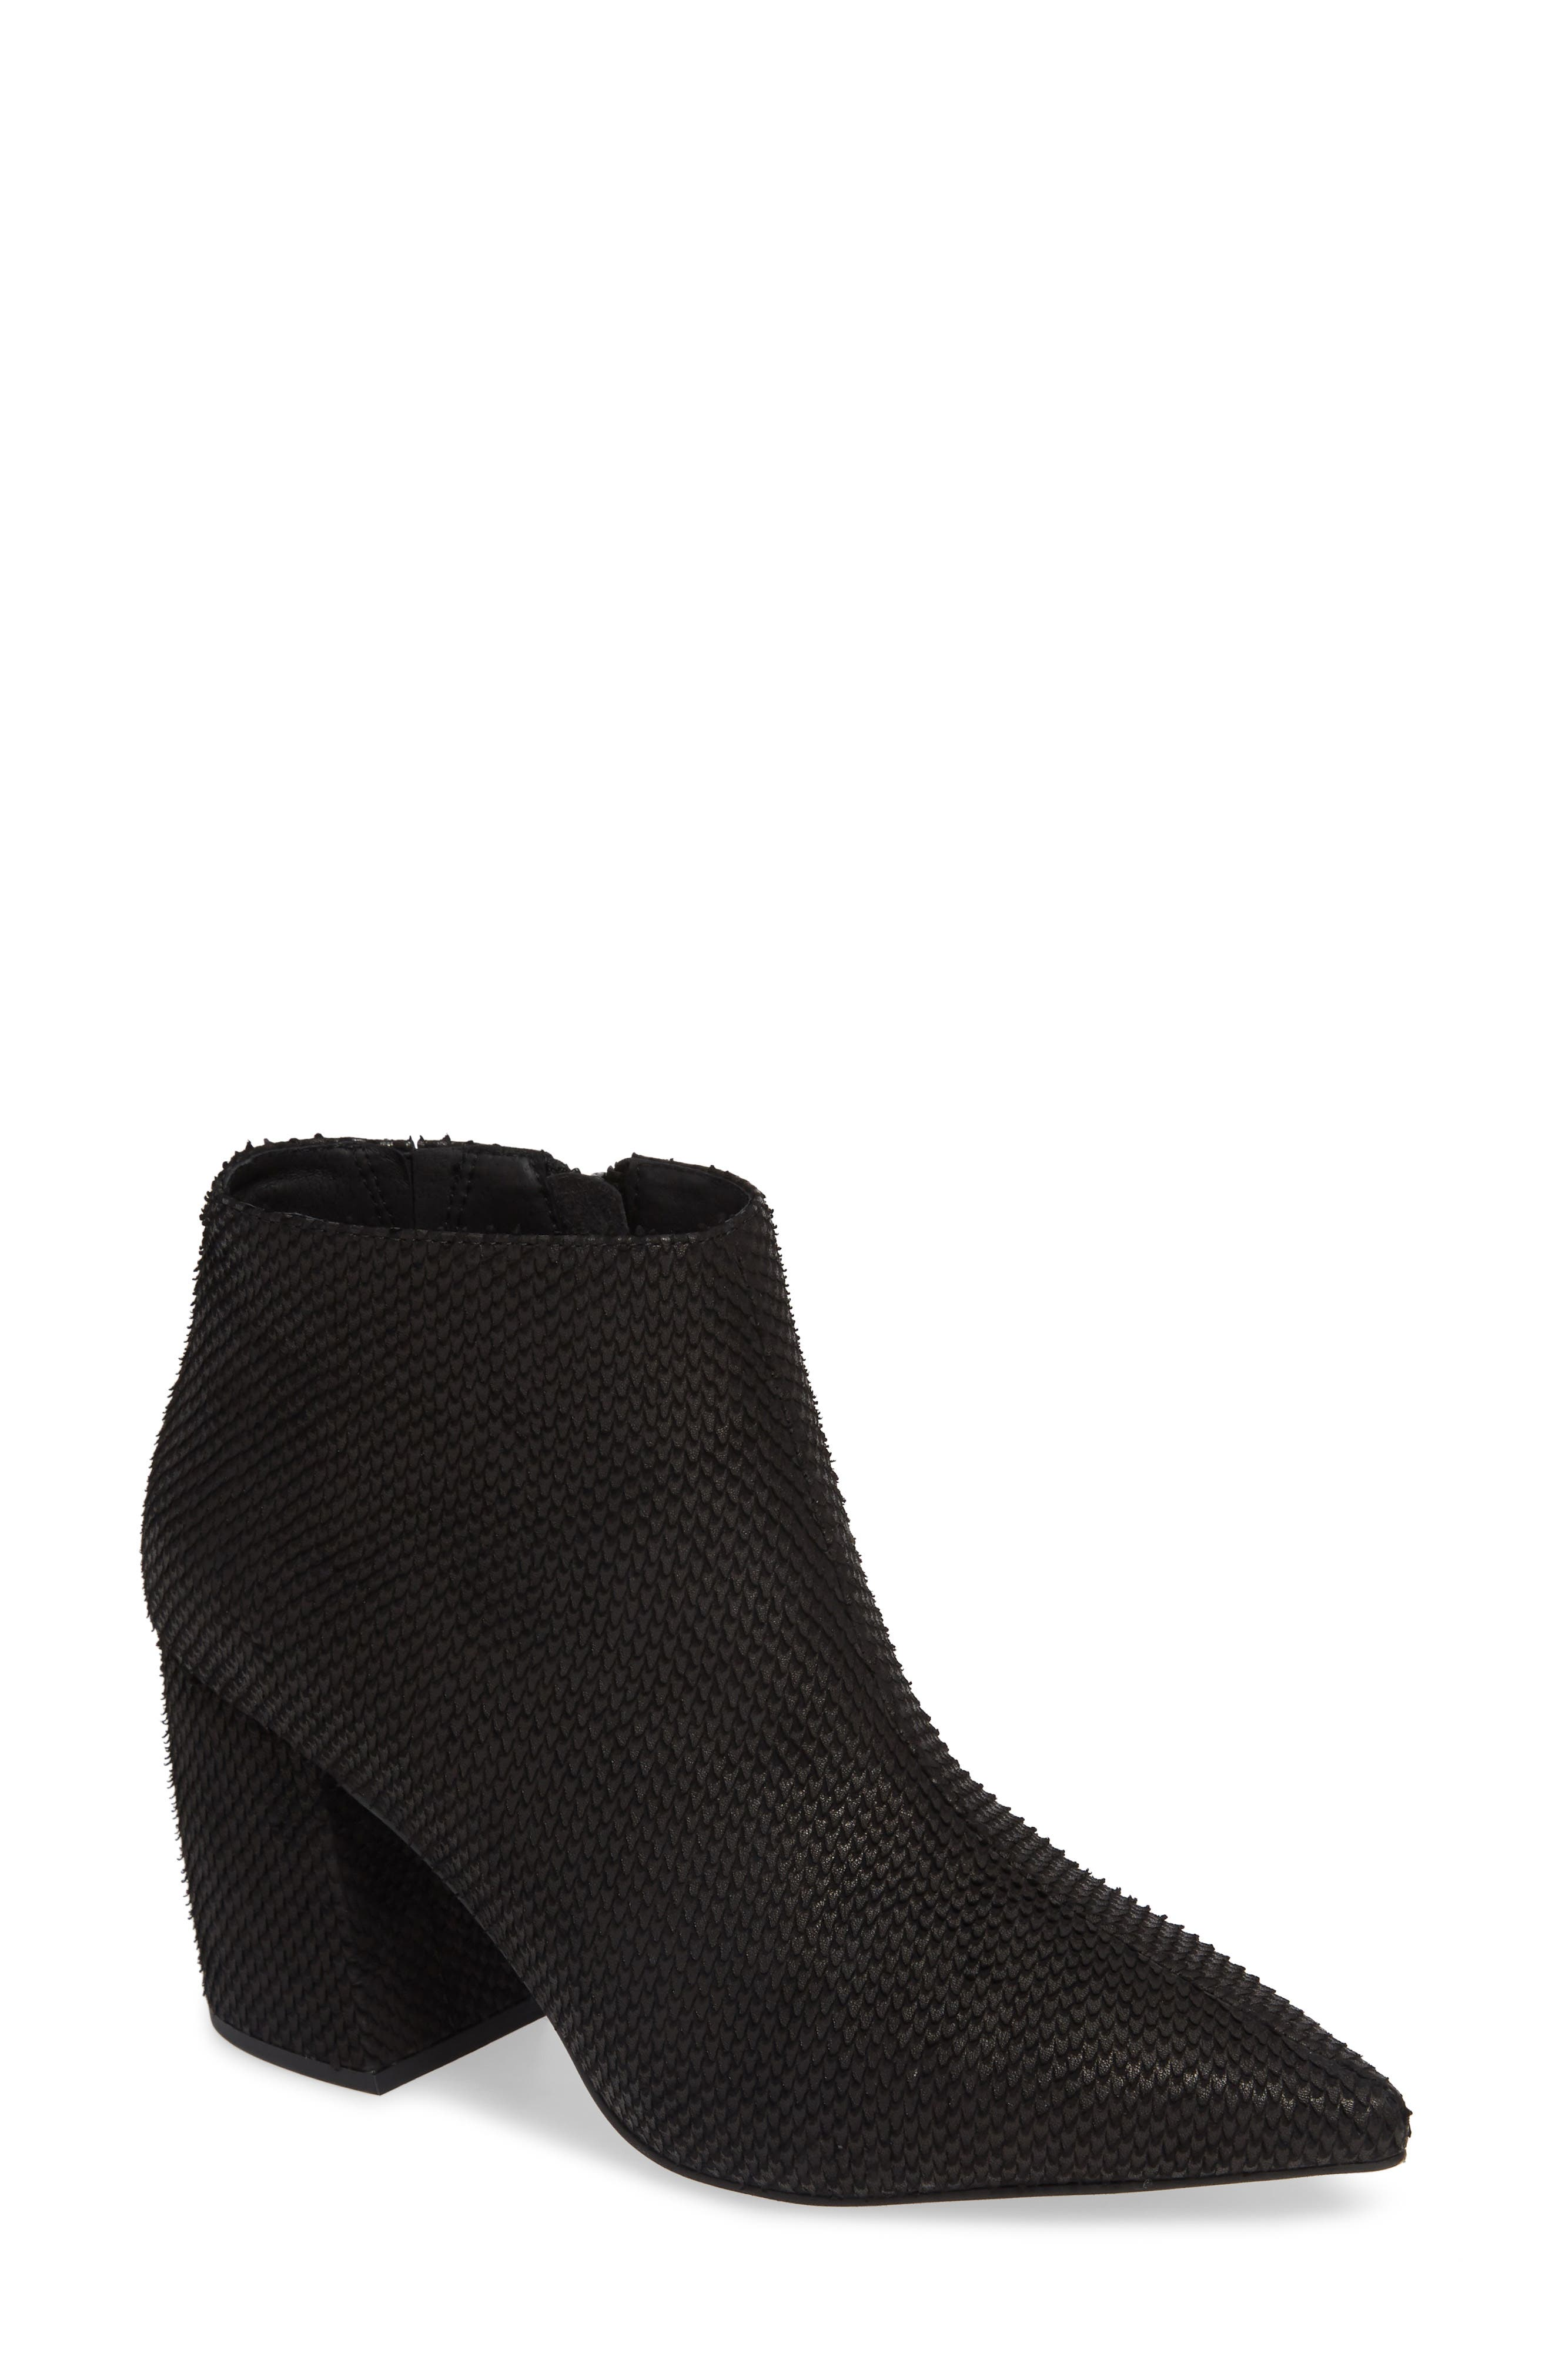 JEFFREY CAMPBELL, Total Ankle Bootie, Main thumbnail 1, color, BLACK SCALES